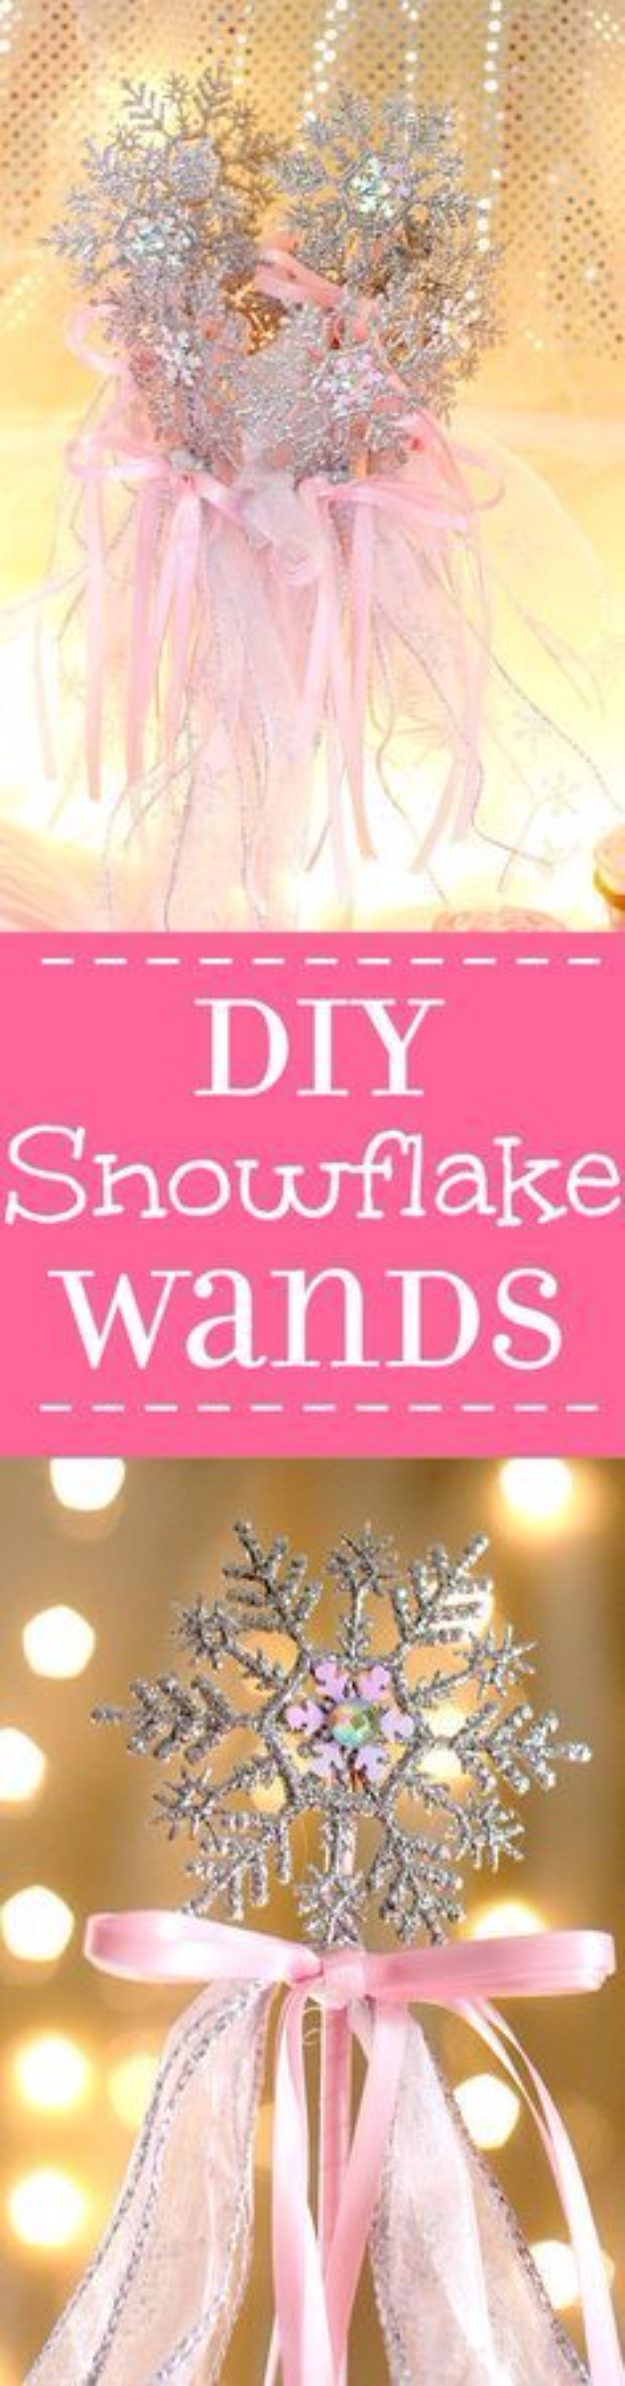 Best DIY Ideas for Wintertime - DIY Snowflake Wands - Winter Crafts with Snowflakes, Icicle Art and Projects, Wreaths, Woodland and Winter Wonderland Decor, Mason Jars and Dollar Store Ideas - Easy DIY Ideas to Decorate Home and Room for Winter - Creative Home Decor and Room Decorations for Adults, Teens and Kids #diy #winter #crafts